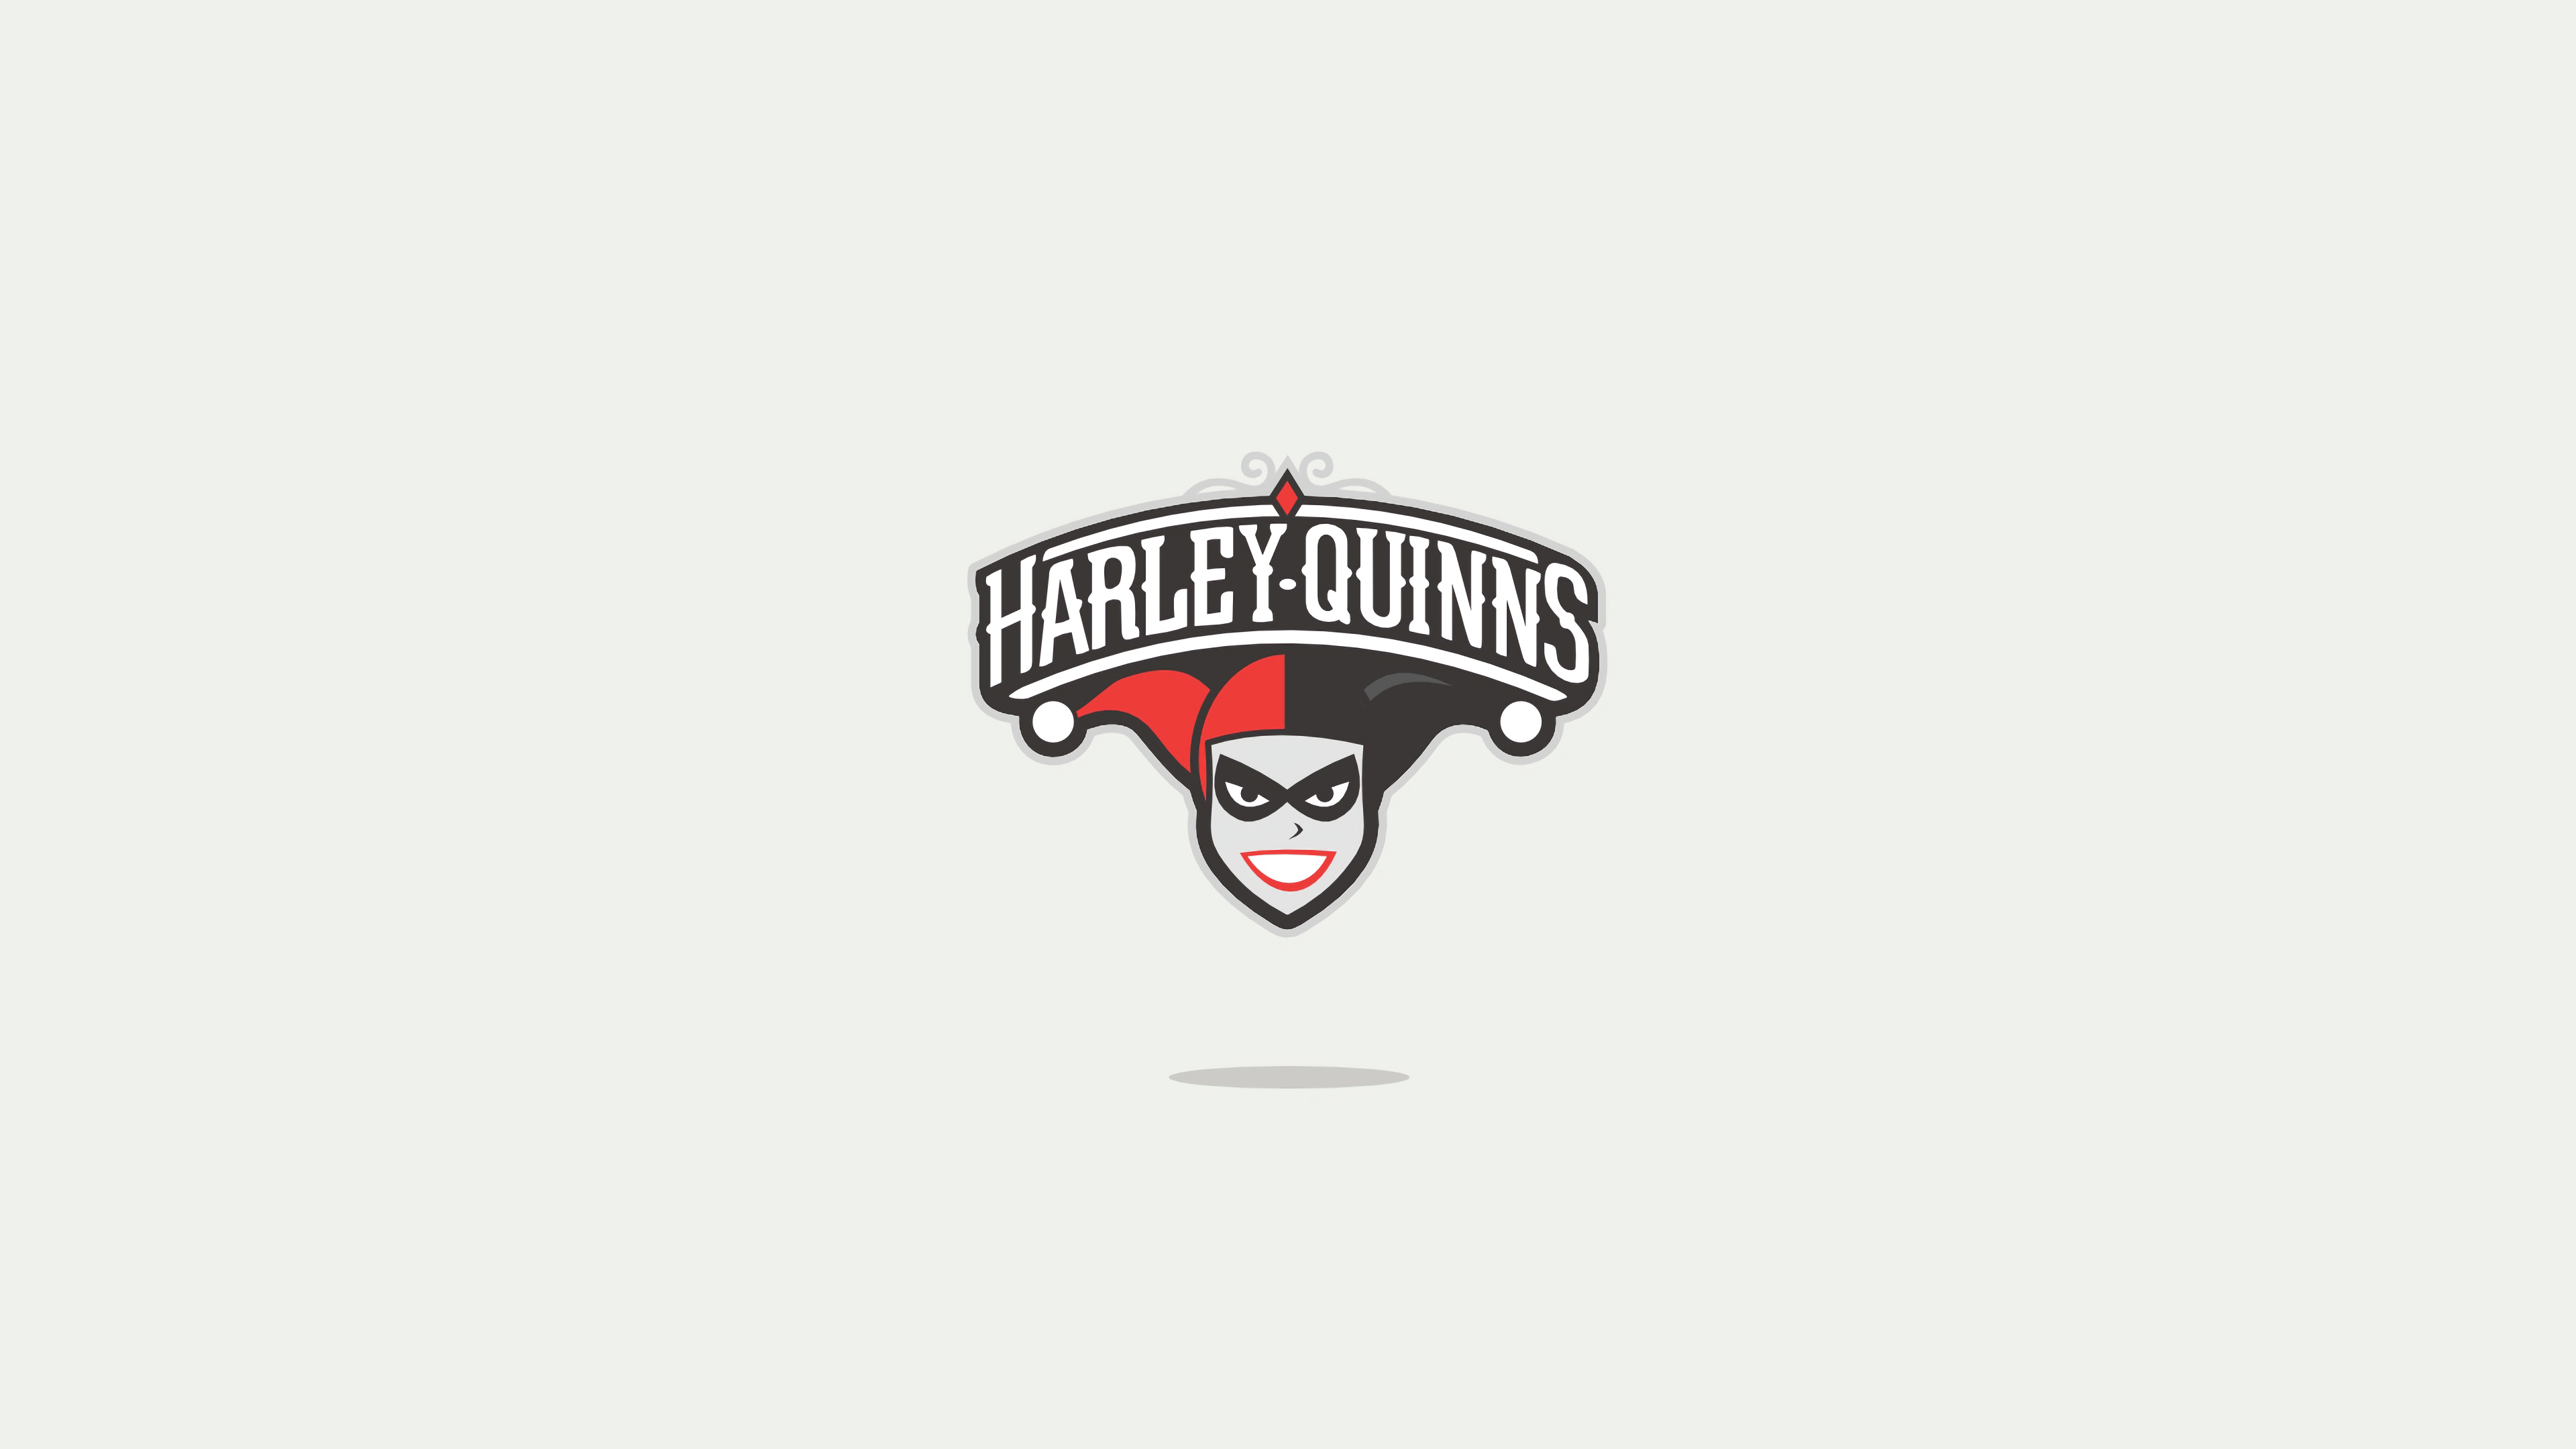 harley quinn minimal logo 1568055513 - Harley Quinn Minimal Logo - superheroes wallpapers, minimalist wallpapers, minimalism wallpapers, hd-wallpapers, harley quinn wallpapers, behance wallpapers, 4k-wallpapers